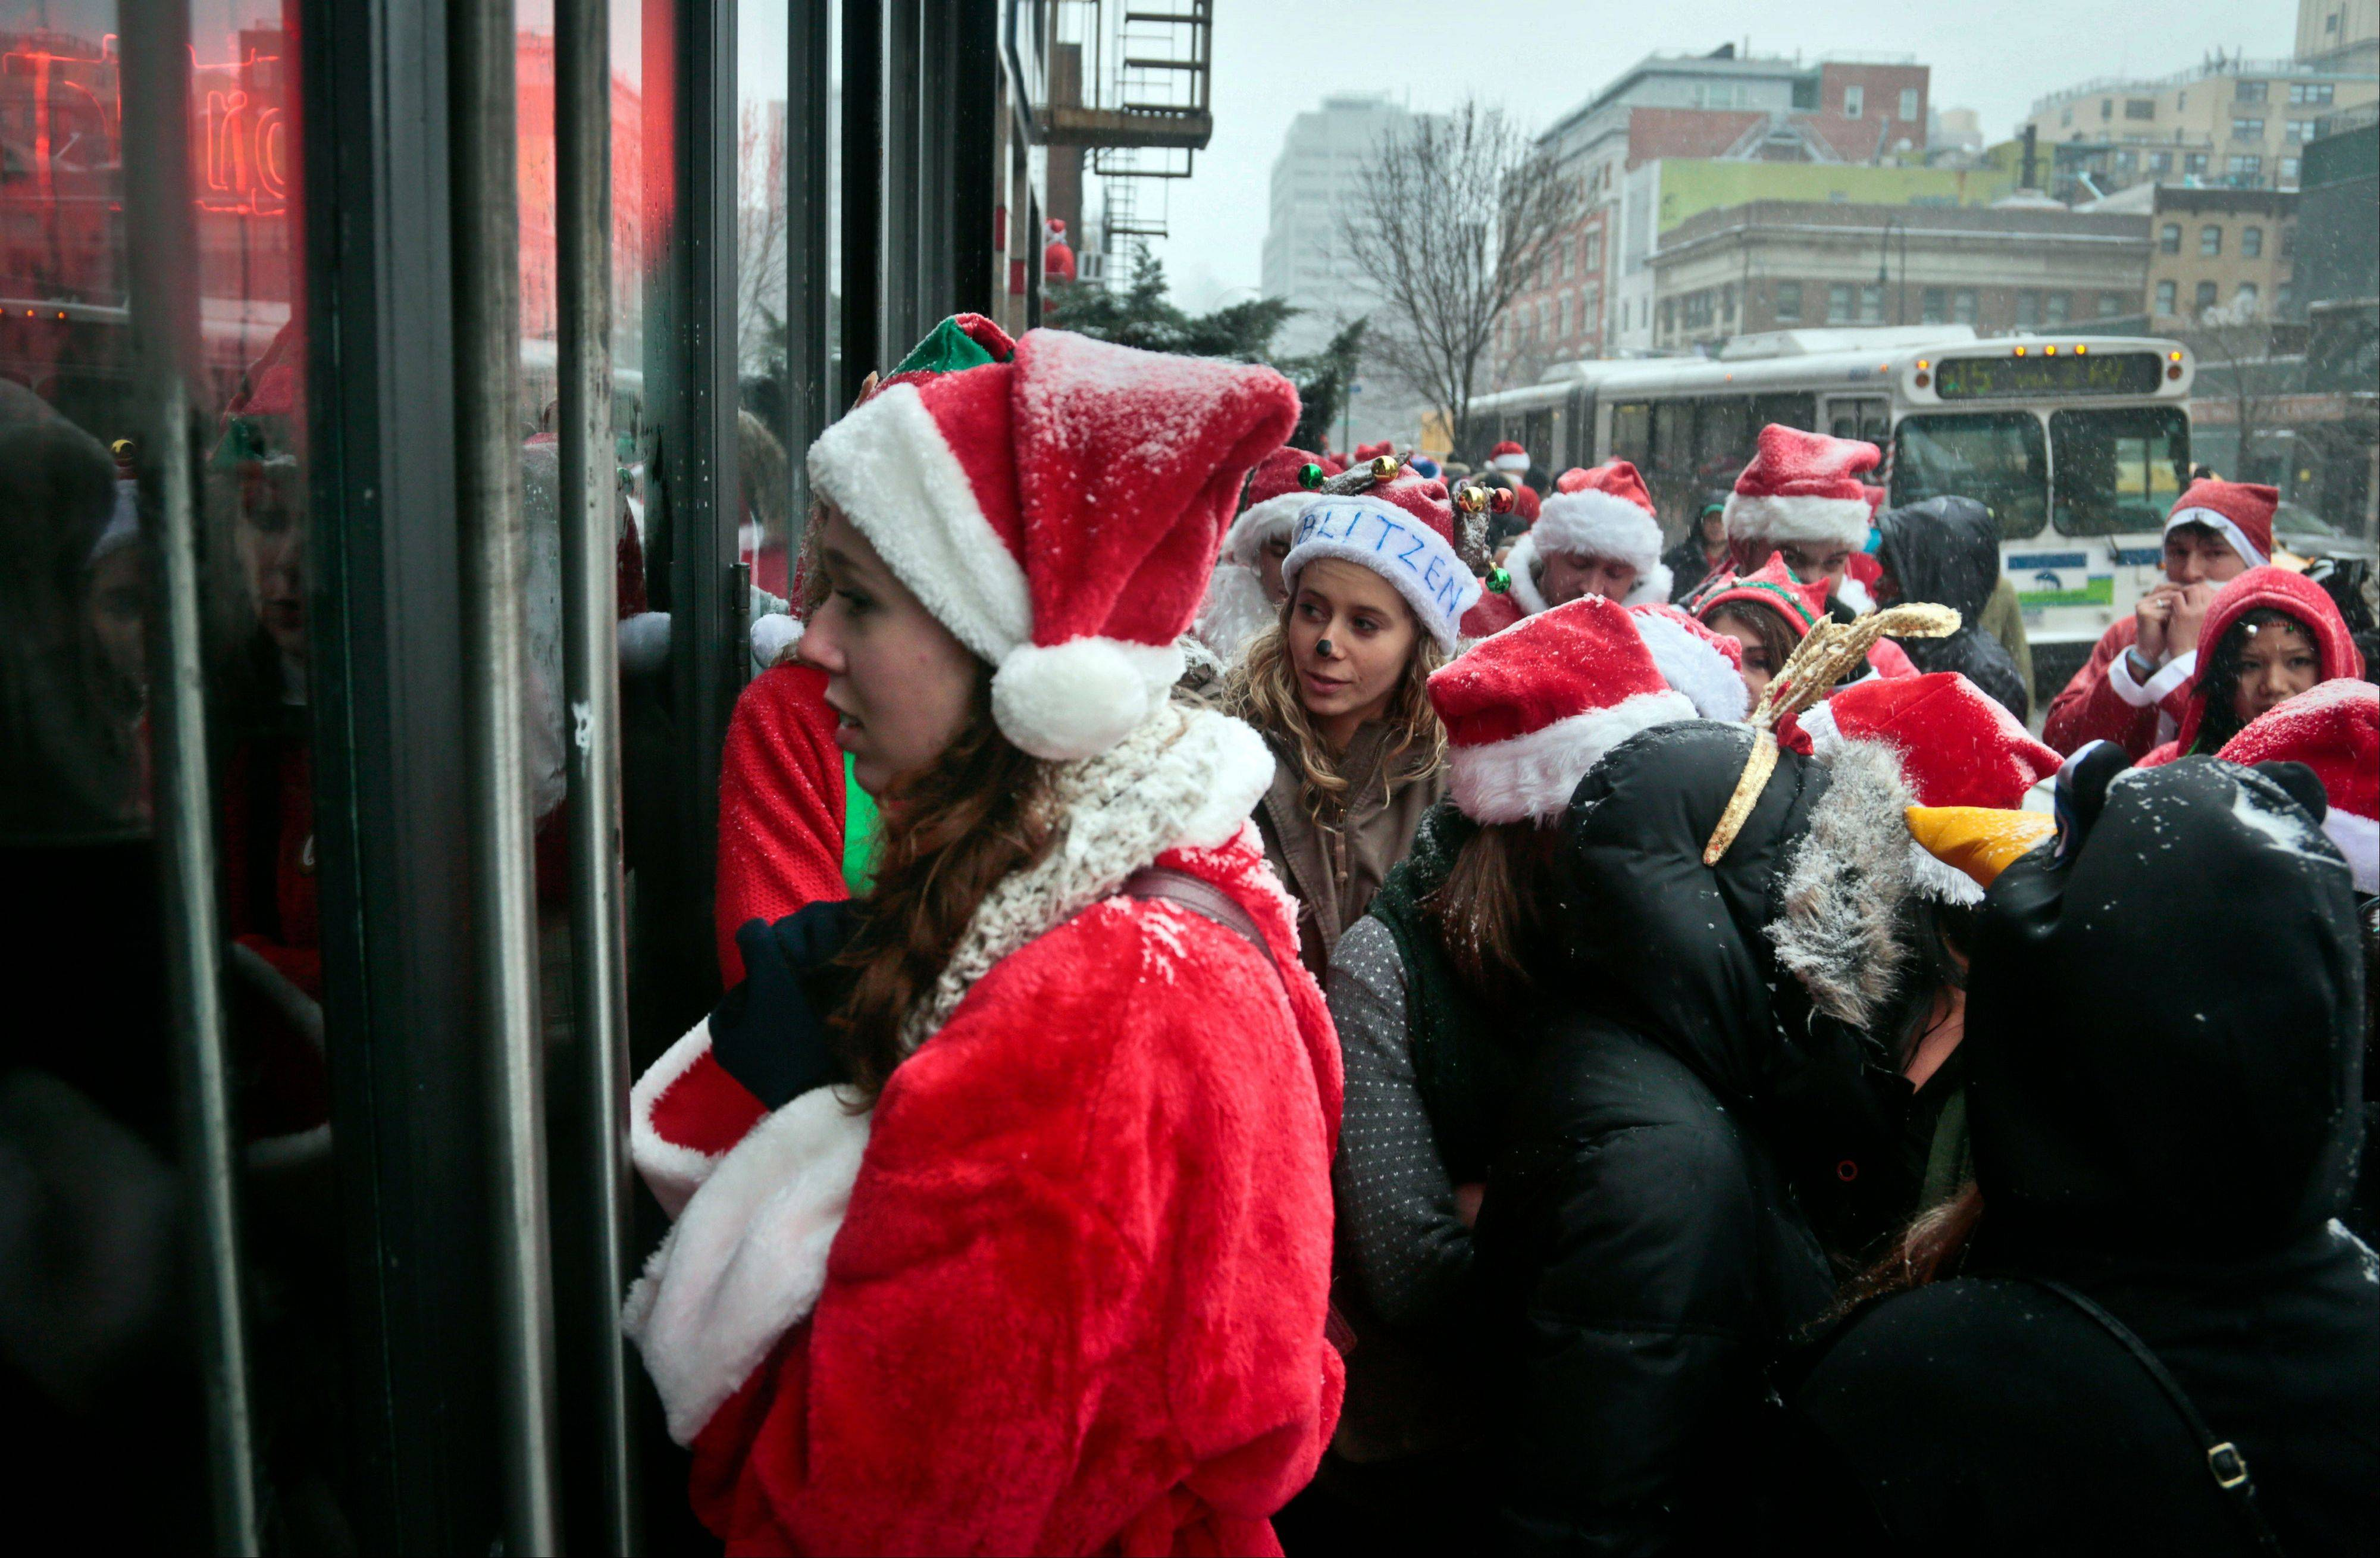 Santacon participants wait Saturday outside a lower eastside N.Y. bar filled to capacity. Thousands of red-suited revelers spread out through the city�s bars and snowy streets amid criticism that the event has become too rowdy.